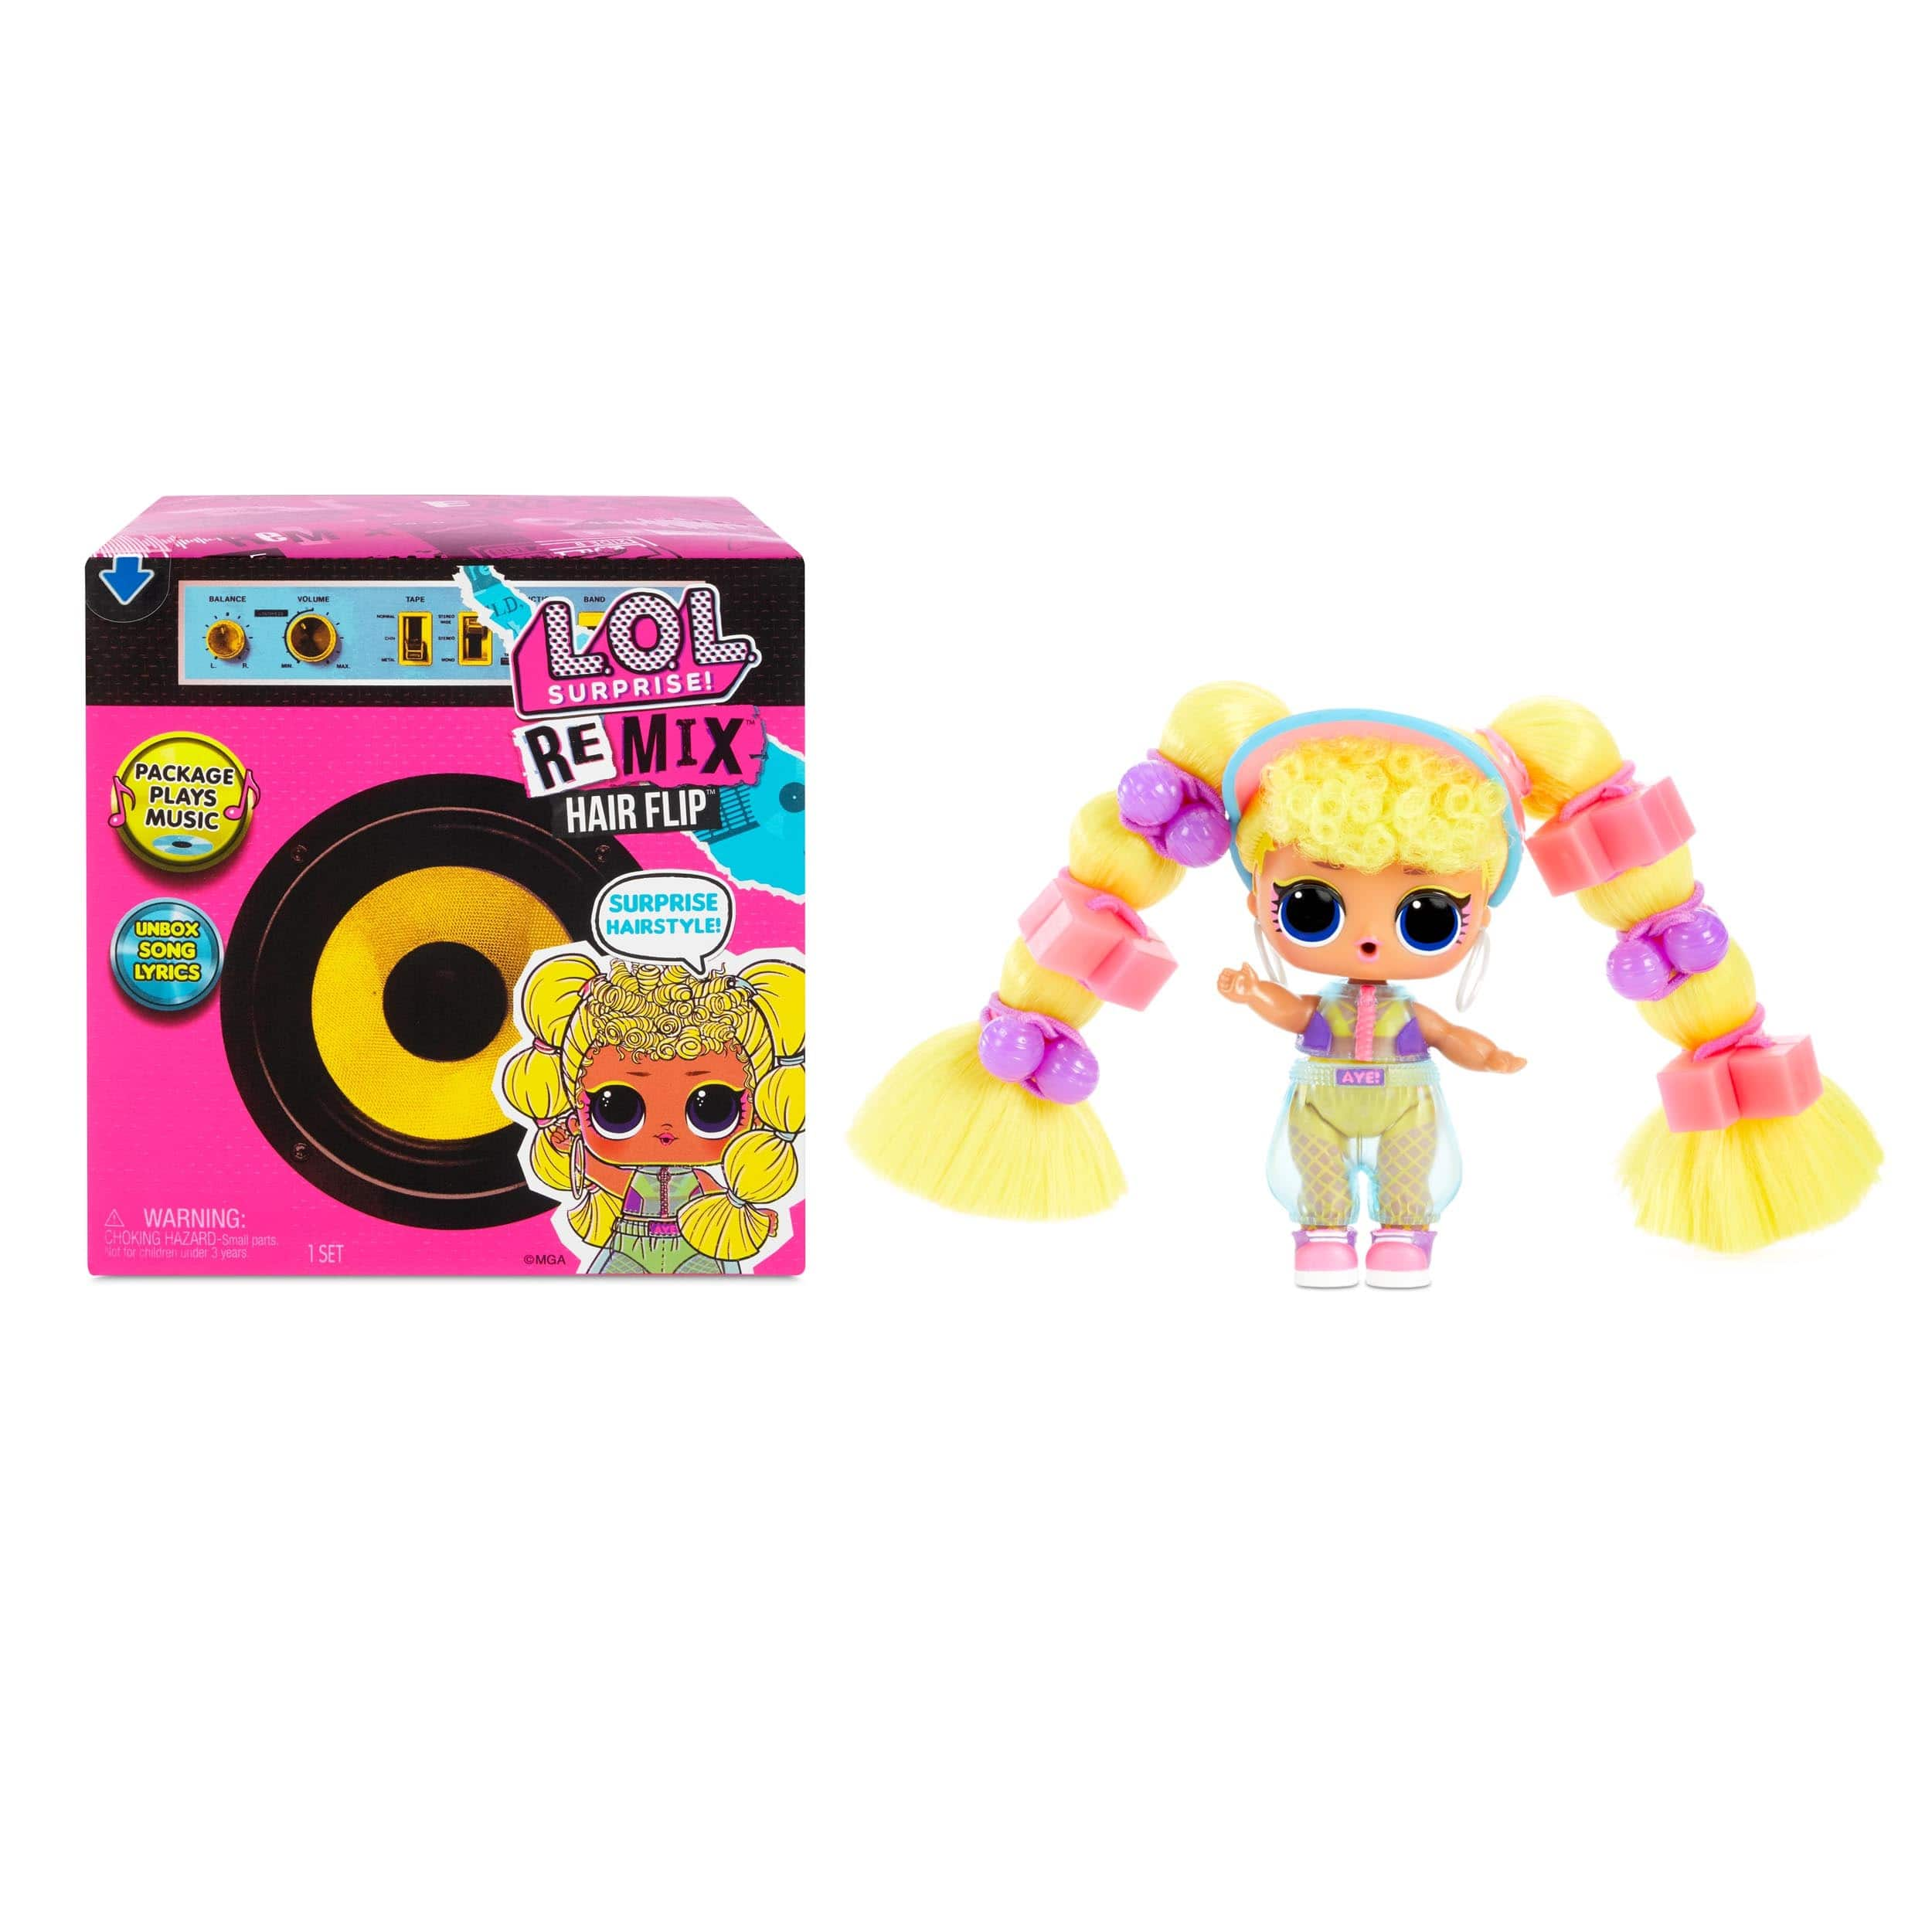 LOL Surprise Remix Hair Flip Dolls - 15 Surprises with Hair Reveal & Music $5.00 + Free shipping w/ $35+